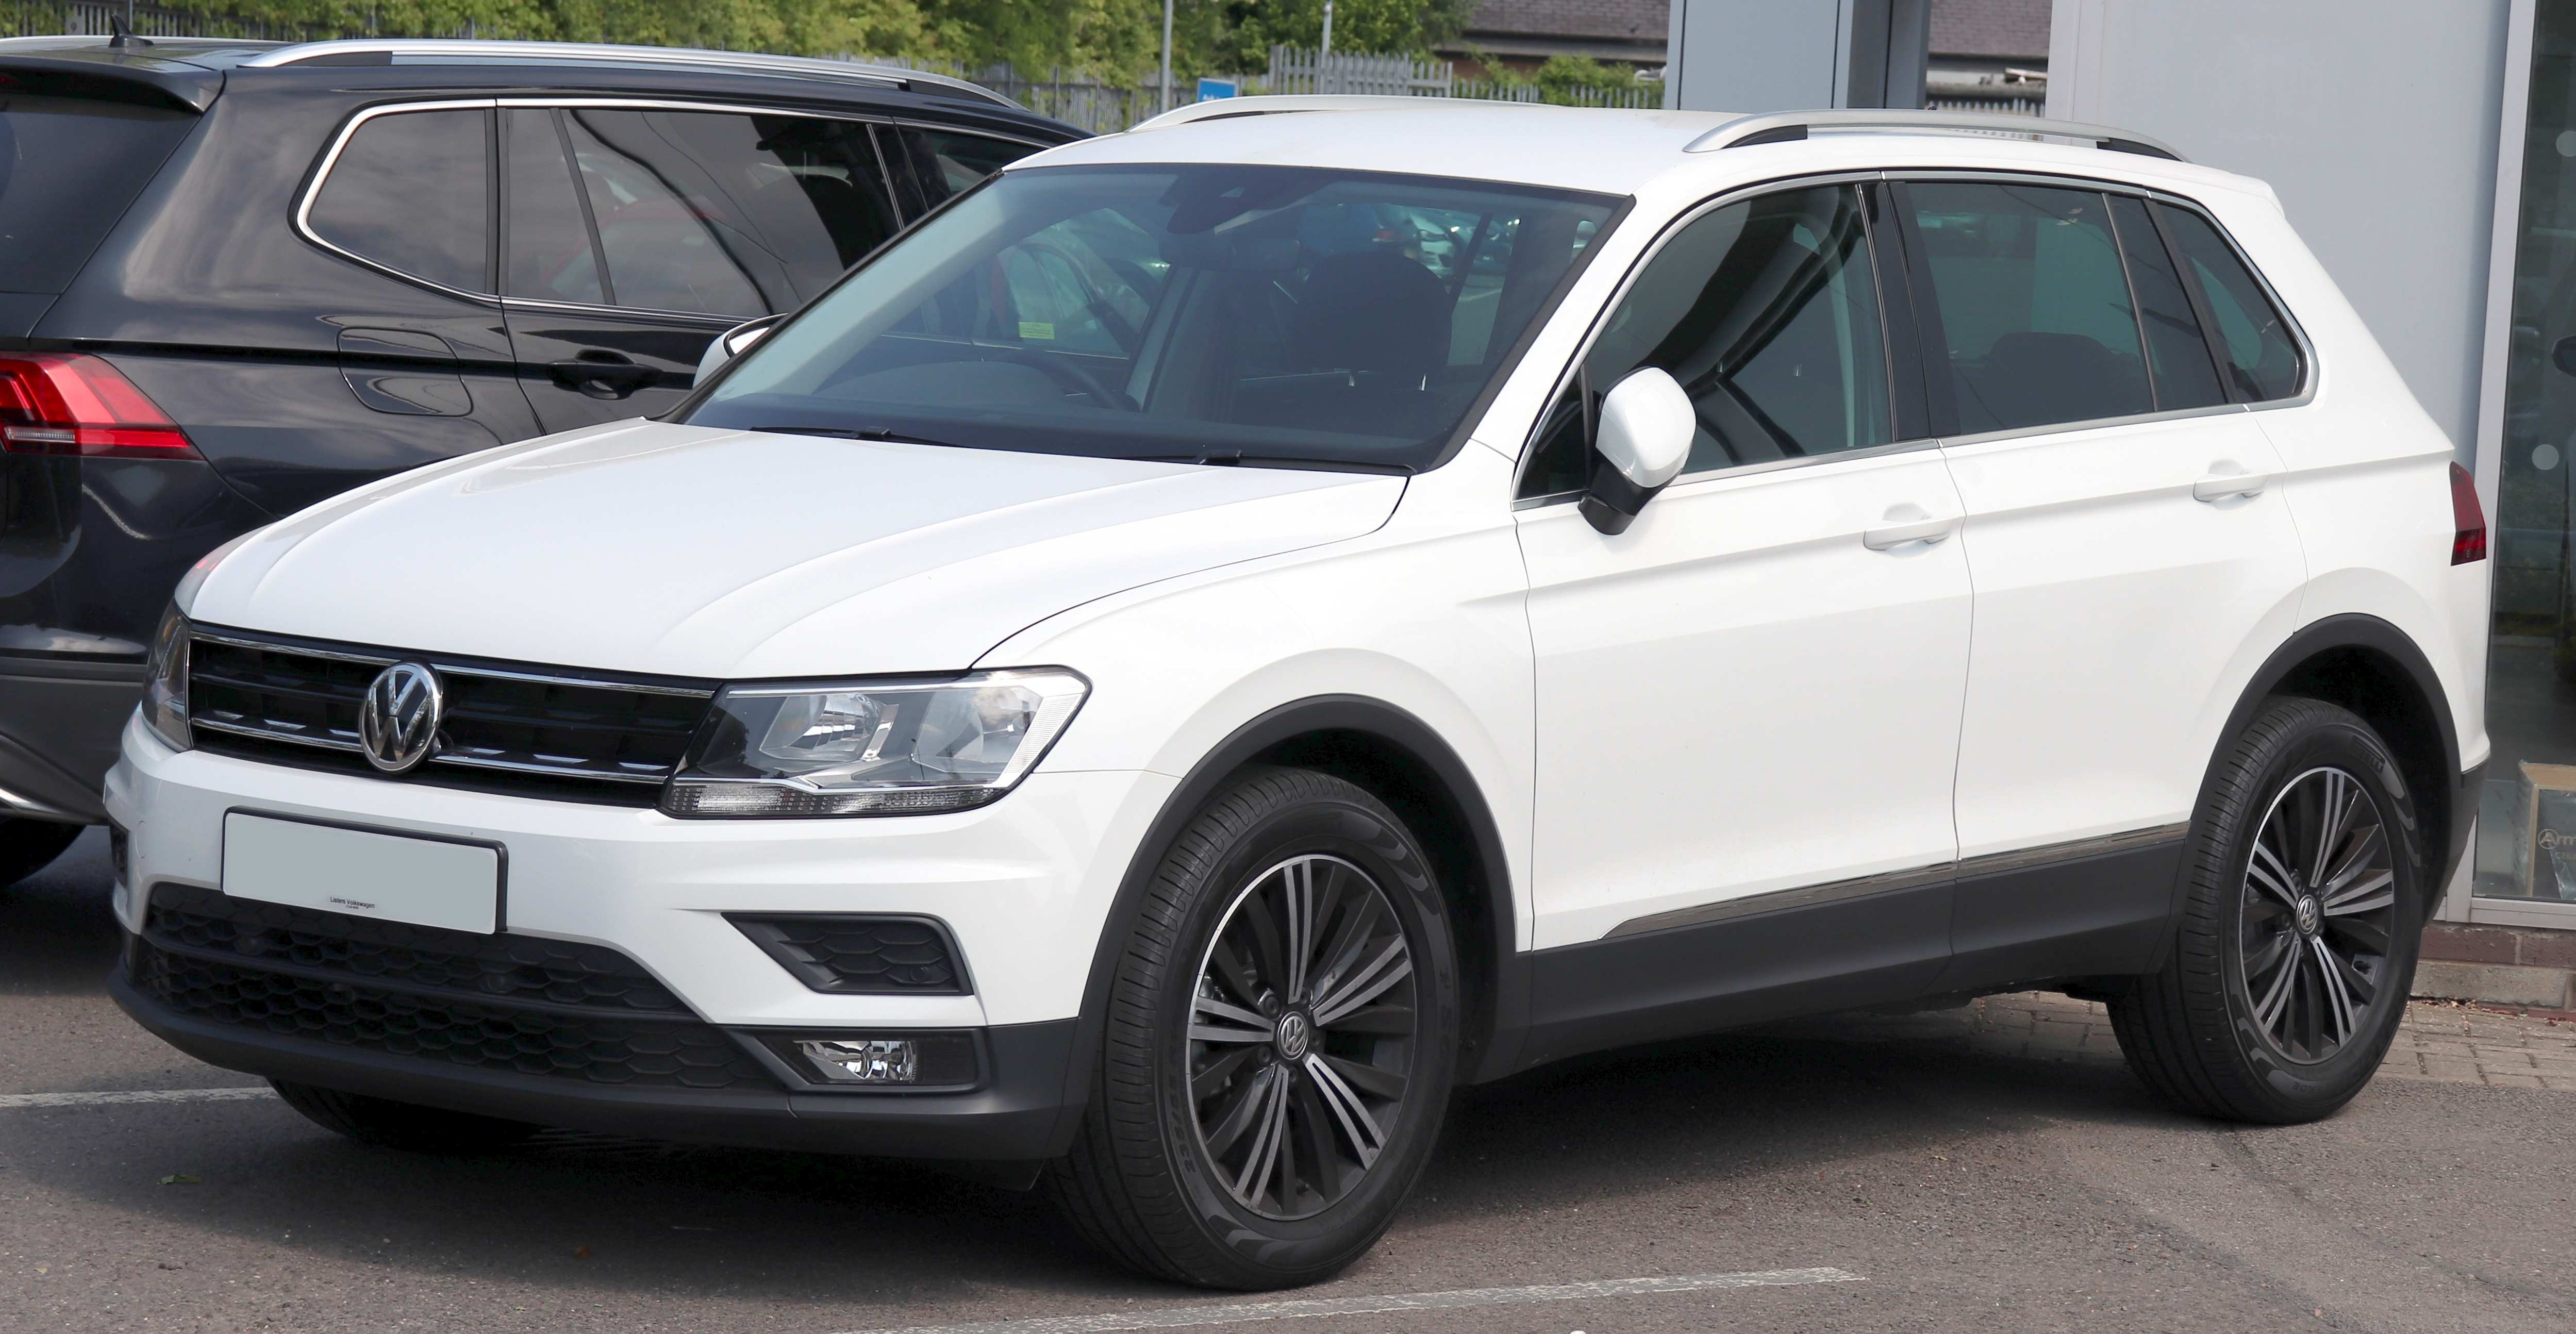 72 All New Tiguan Release Date New Concept by Tiguan Release Date